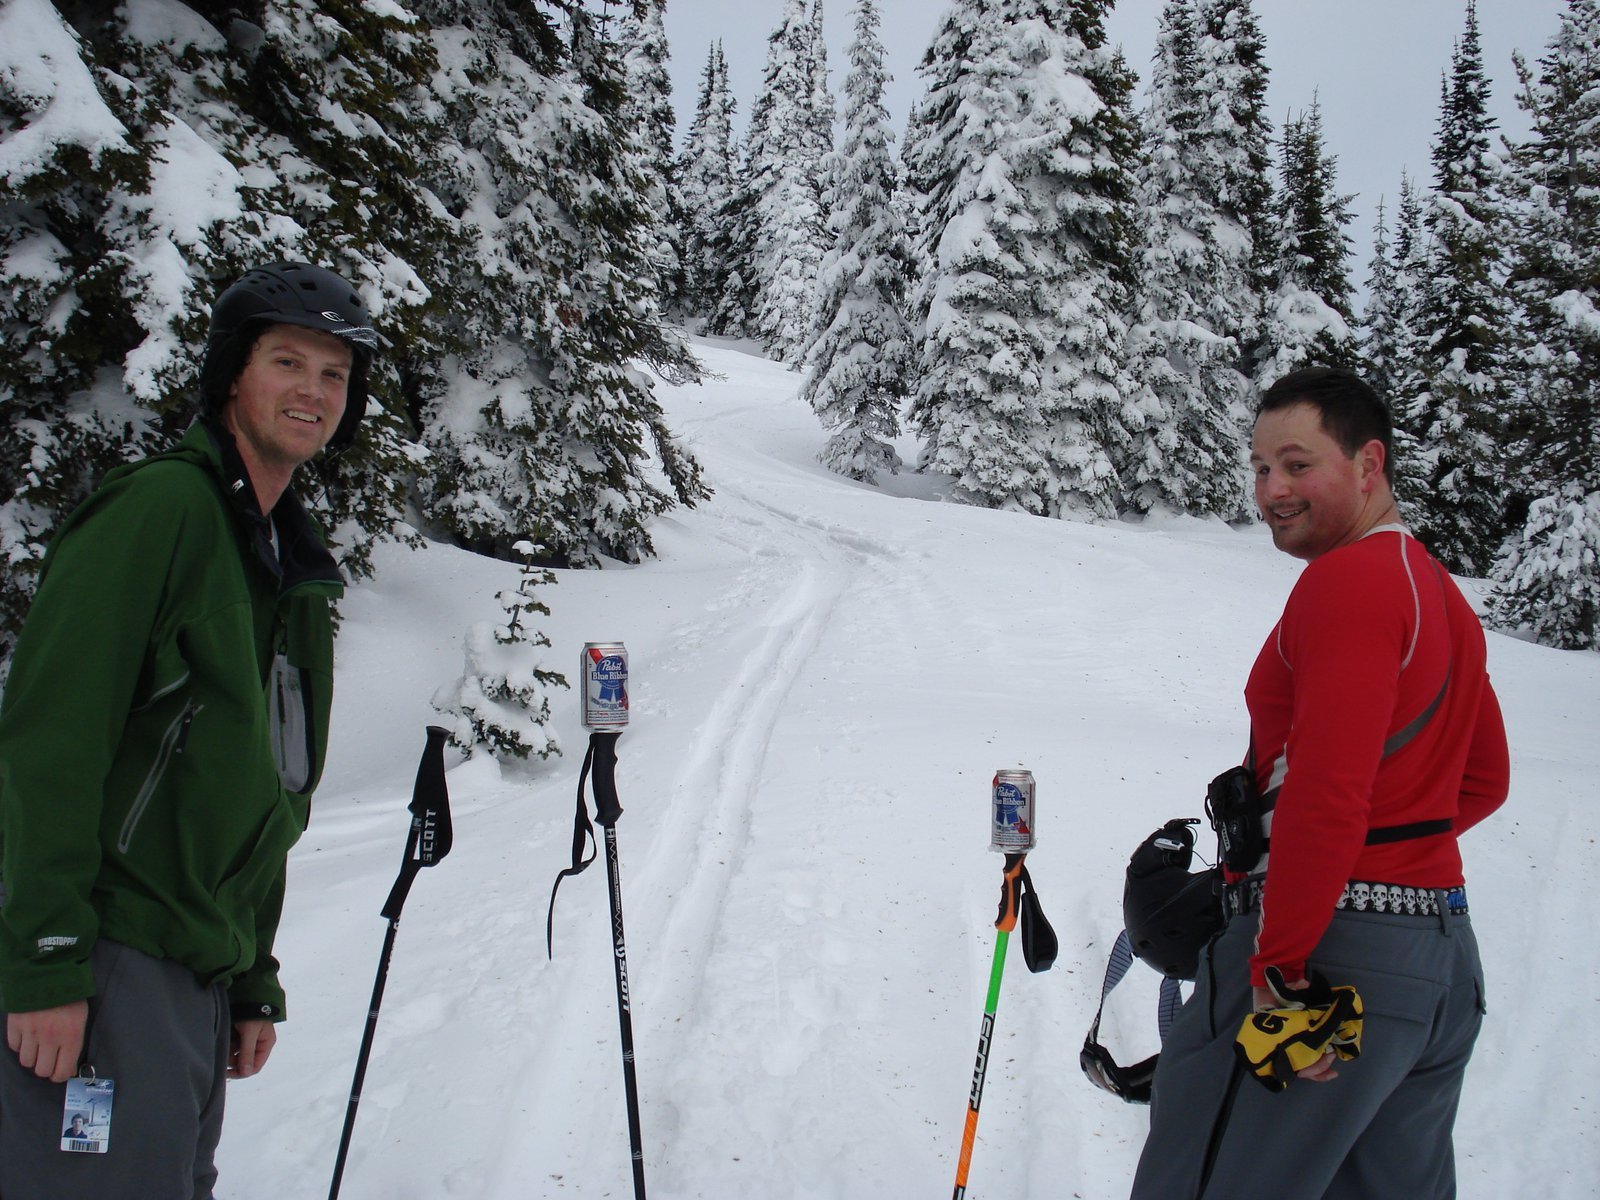 Schweitzer backcountry